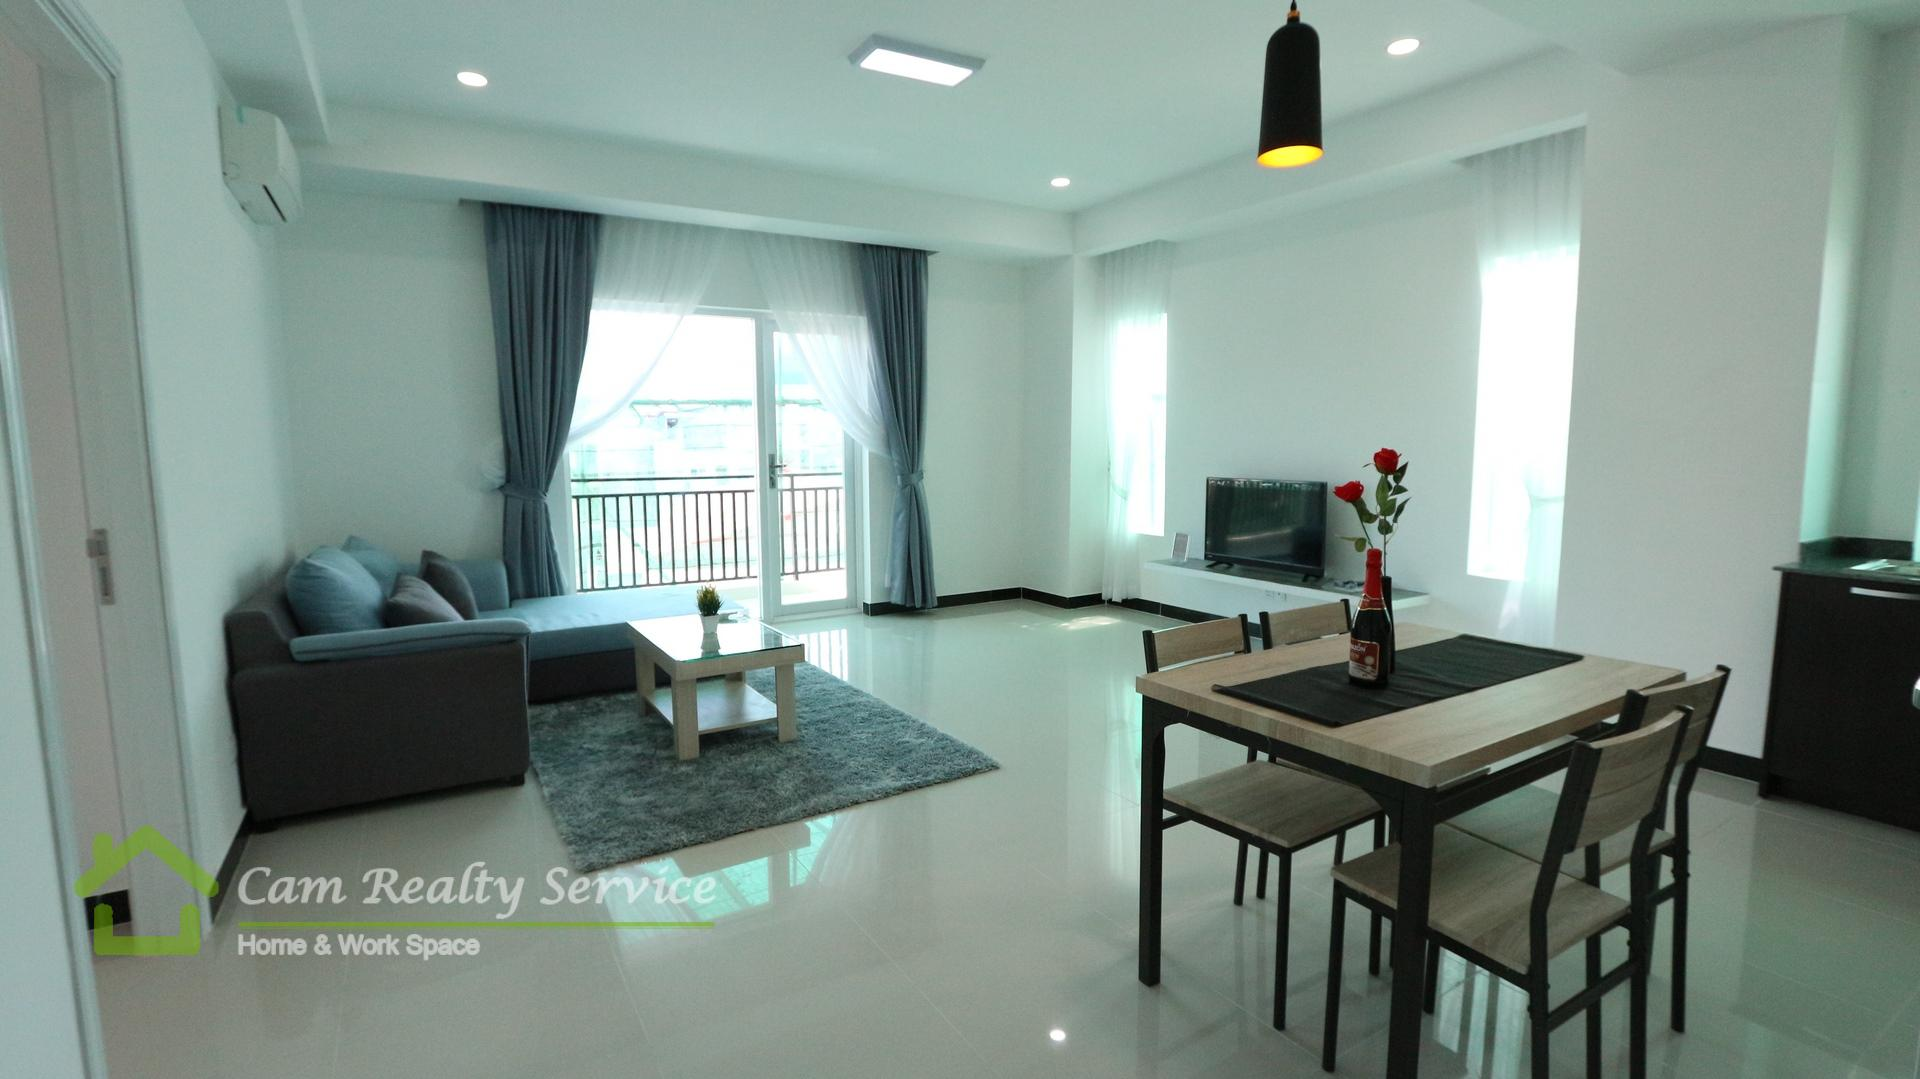 Aeon Mall area| Modern style 1 bedroom serviced apartment for rent| 700$/month | Pool & Gym